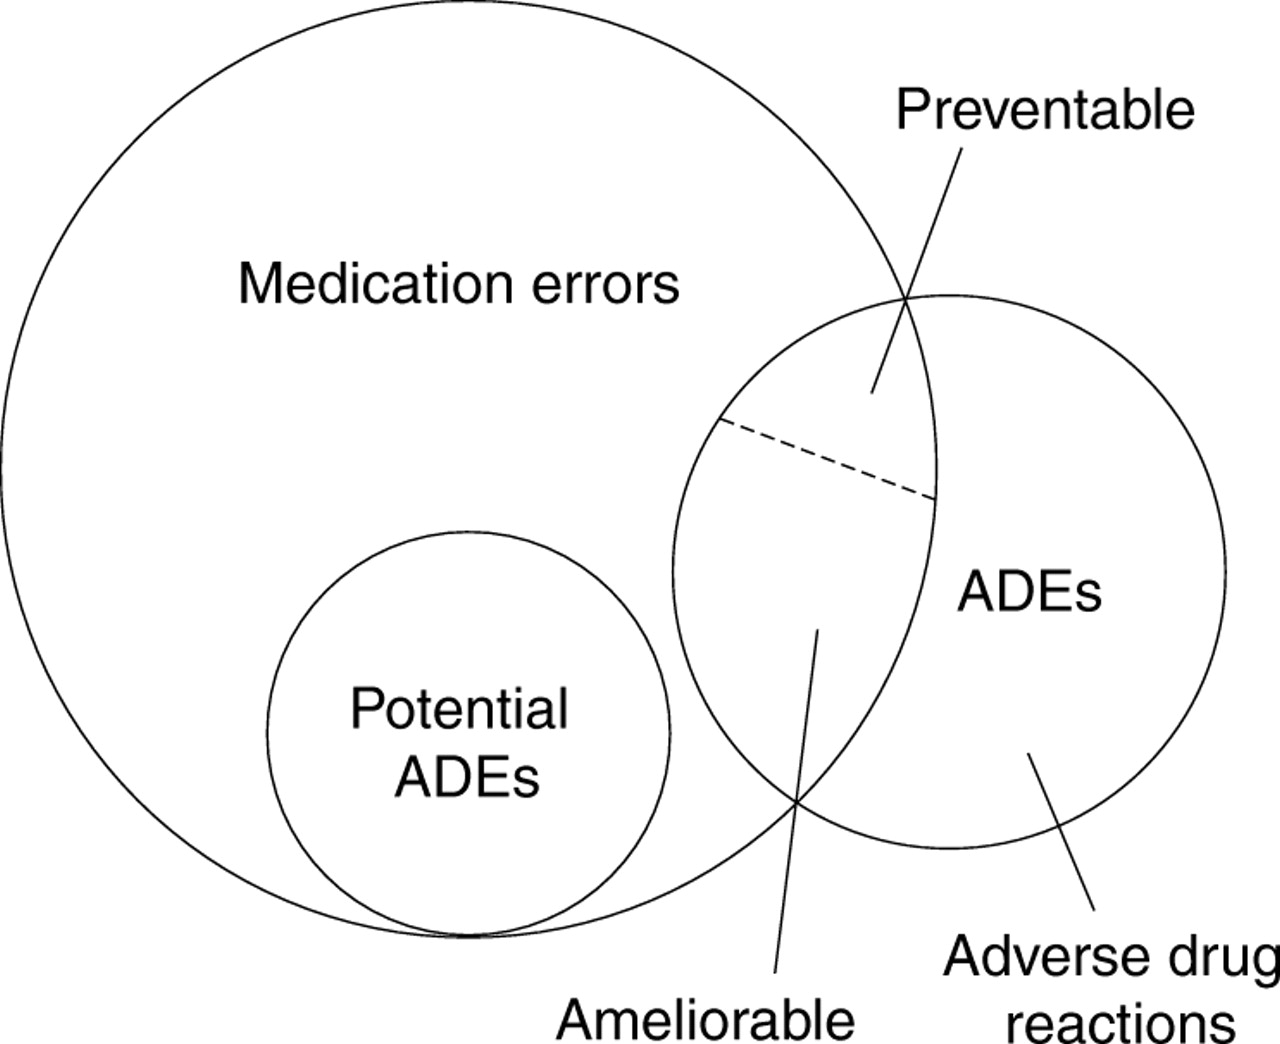 adverse drug events and medication errors: detection and